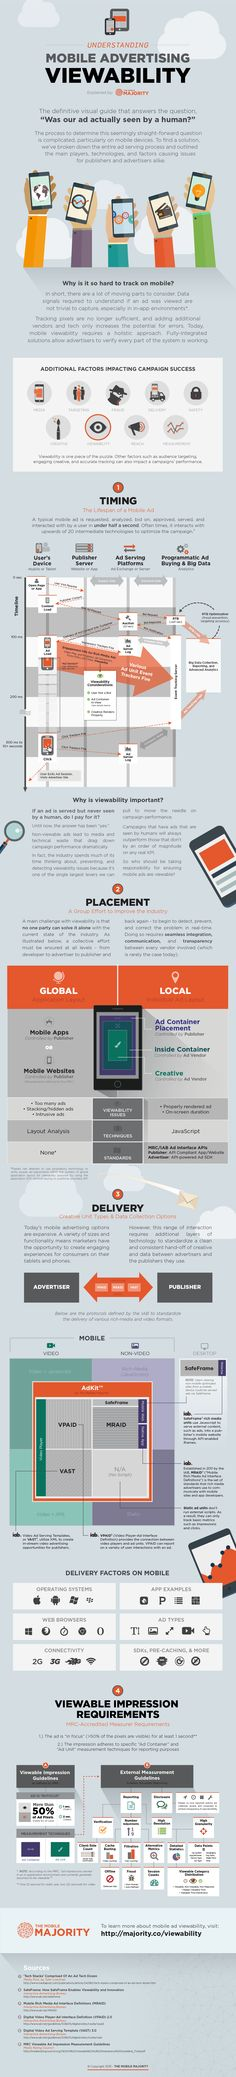 The Mobile Majority released this infographic that aims to help marketers better understand mobile viewability.